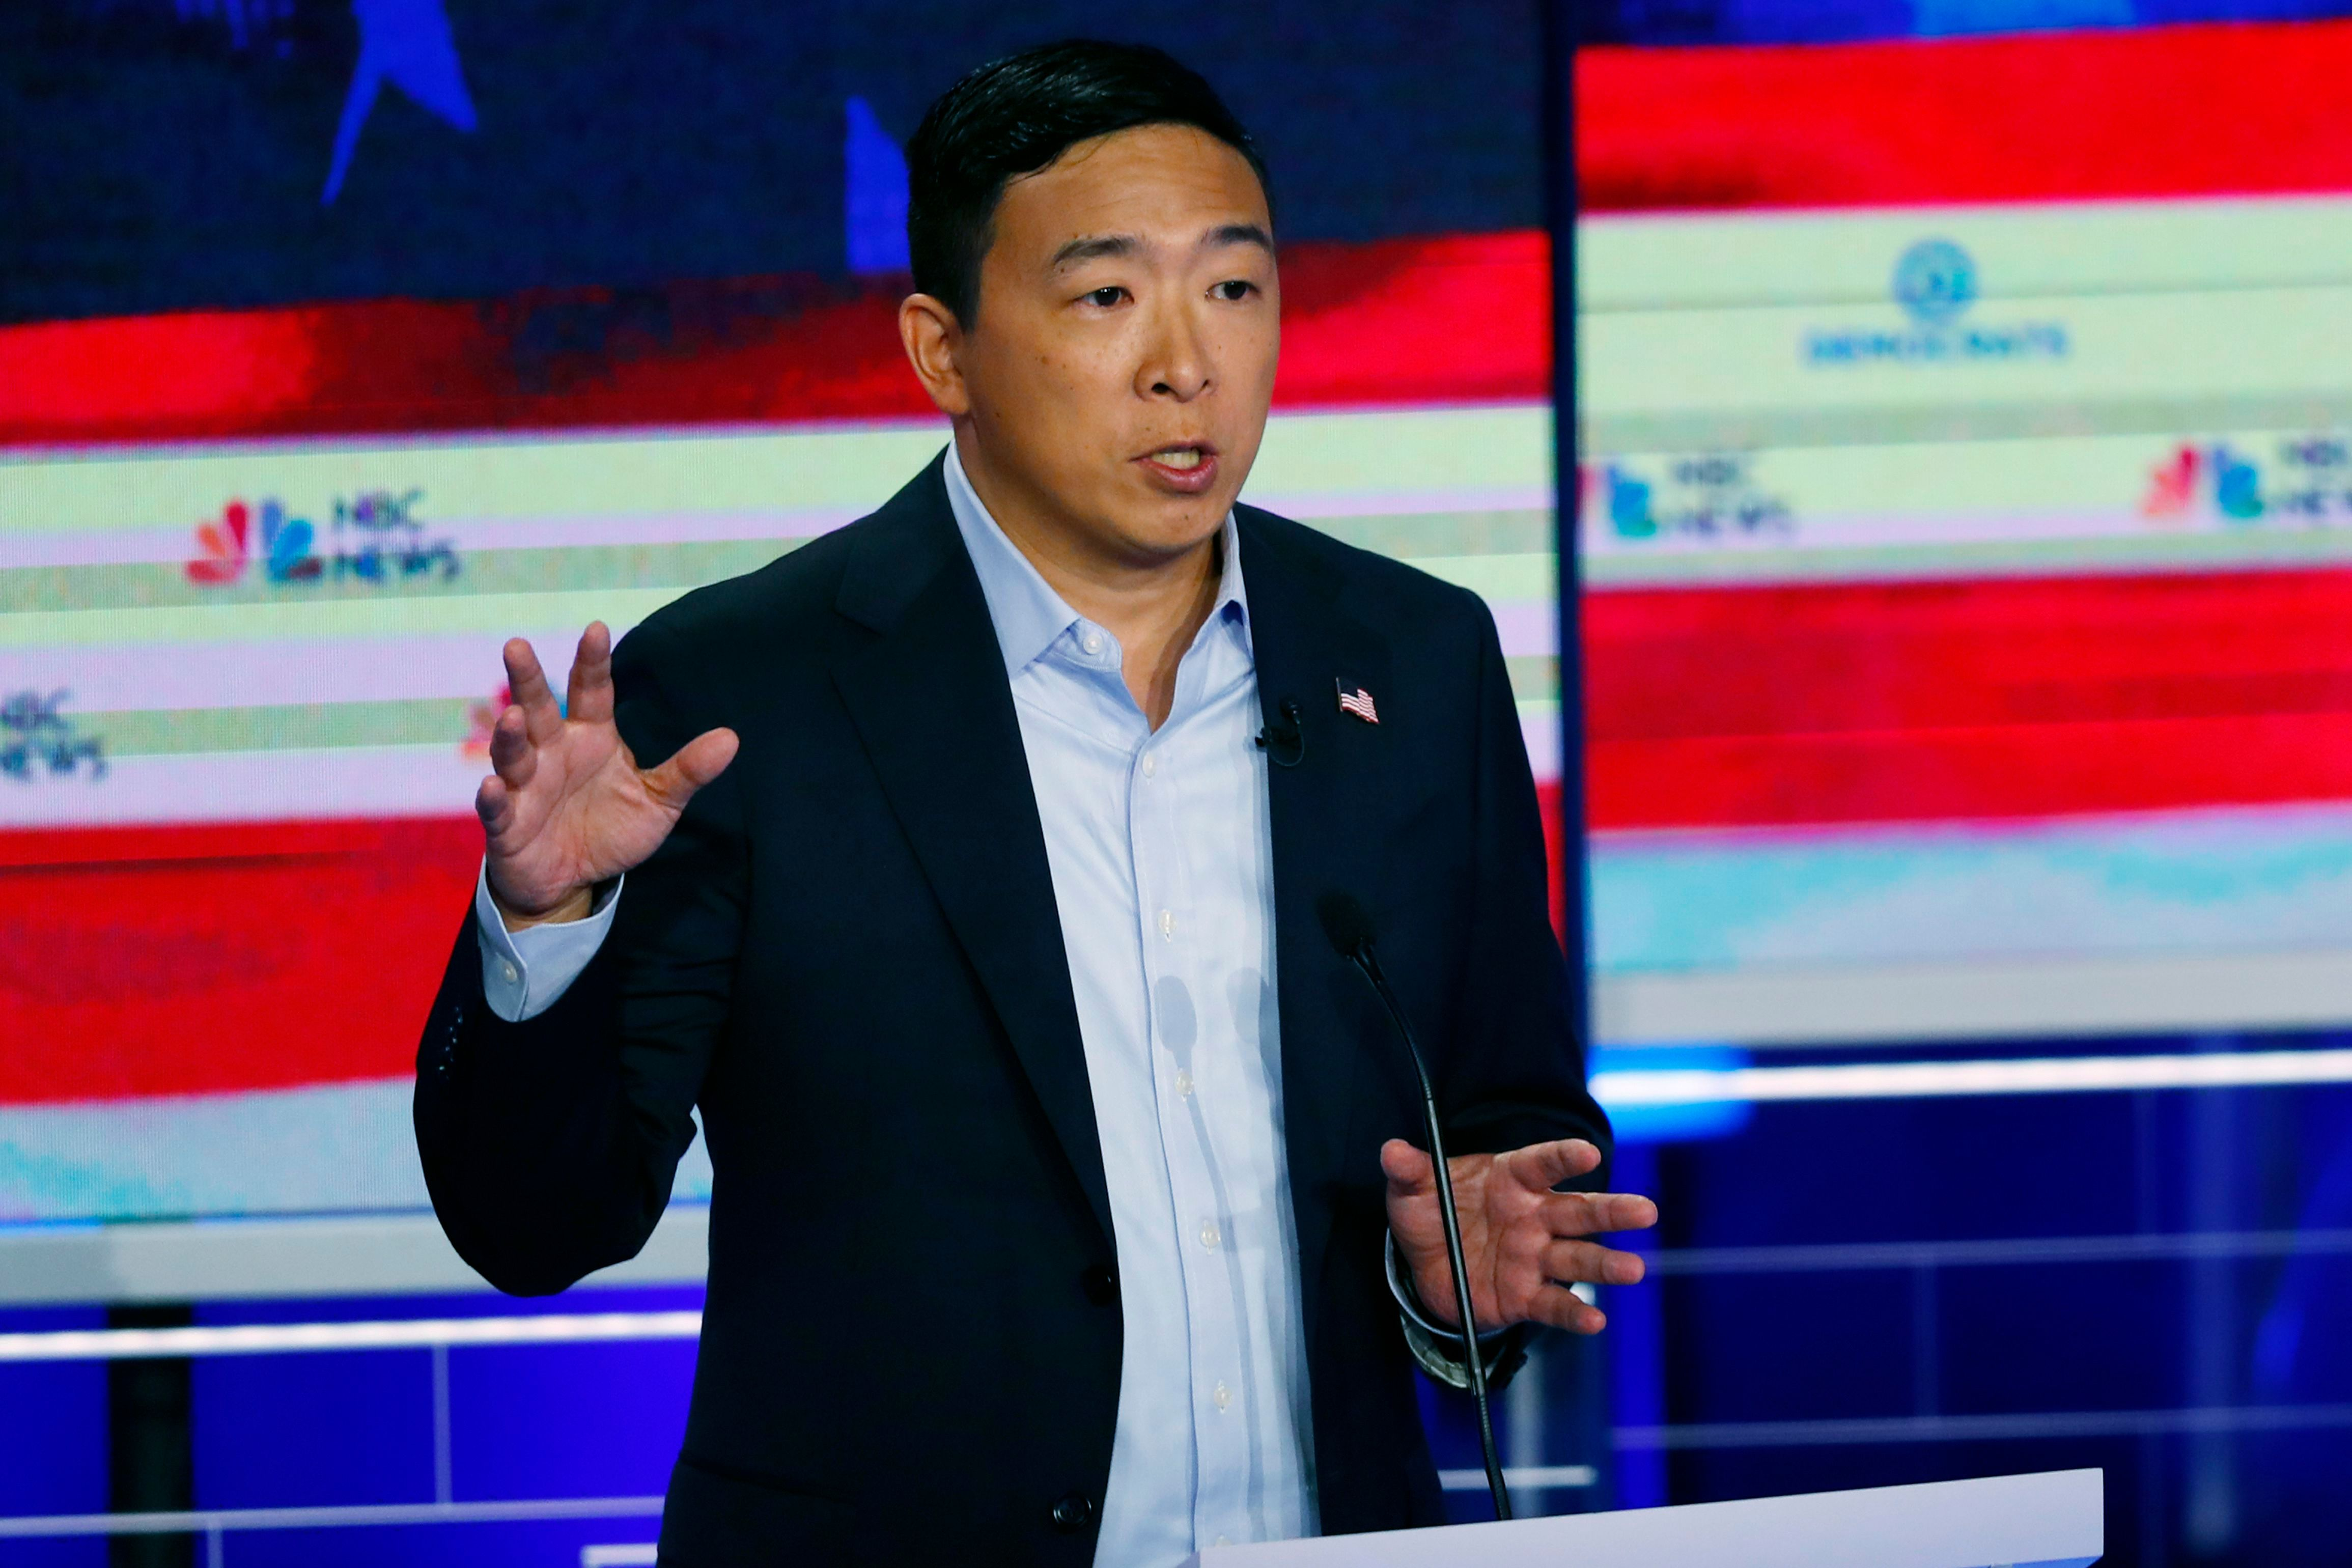 Democratic presidential candidate entrepreneur Andrew Yang speaks during the Democratic primary debate hosted by NBC News at the Adrienne Arsht Center for the Performing Arts, in MiamiElection 2020 Debate, Miami, USA - 27 Jun 2019